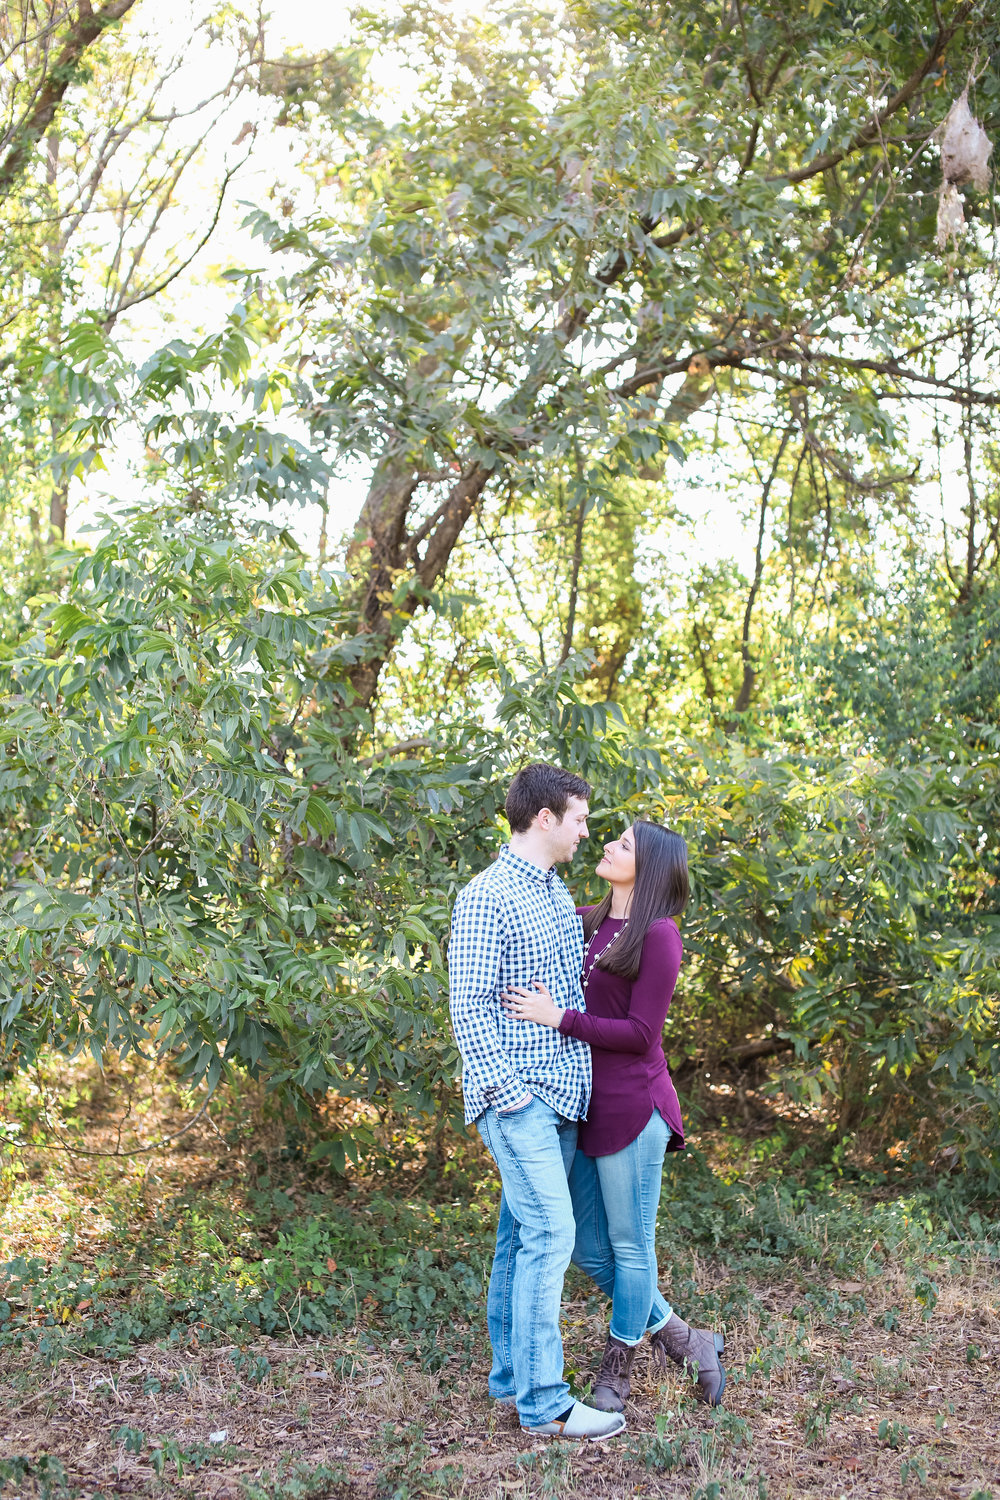 Matty-Drollette-Engagments-Montgomery-Alabama-Photographer-103.jpg